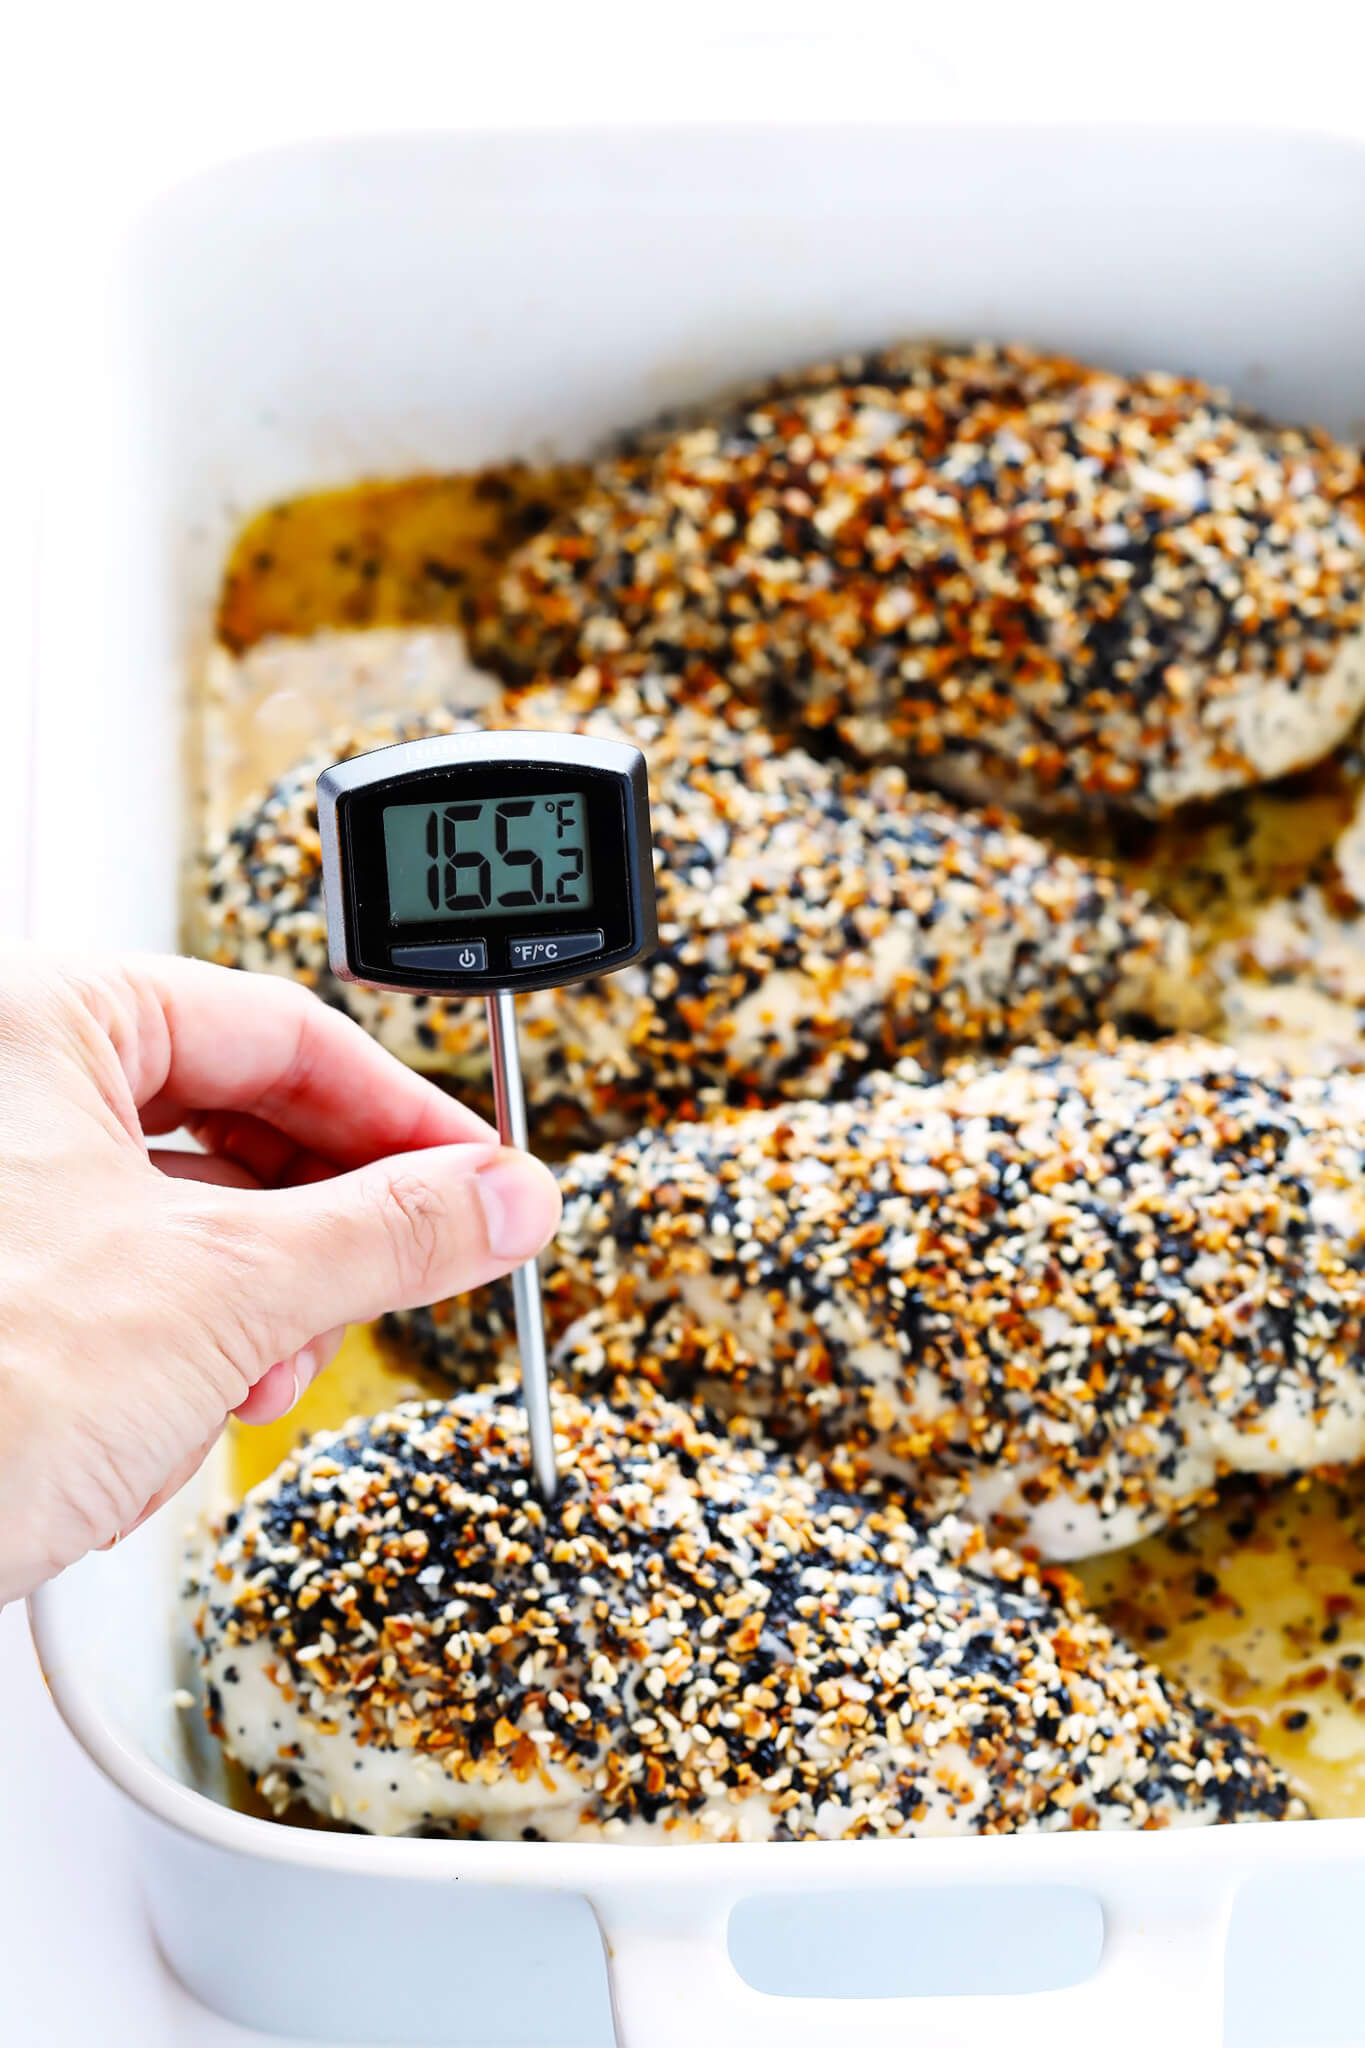 """This """"Everything"""" Chicken recipe is made with yummy everything bagel seasoning, and baked in the oven to juicy, tender, delicious perfection. It's an easy and gluten-free dinner idea that everyone will love, especially with those garlic, poppyseed, sesame flavors! 